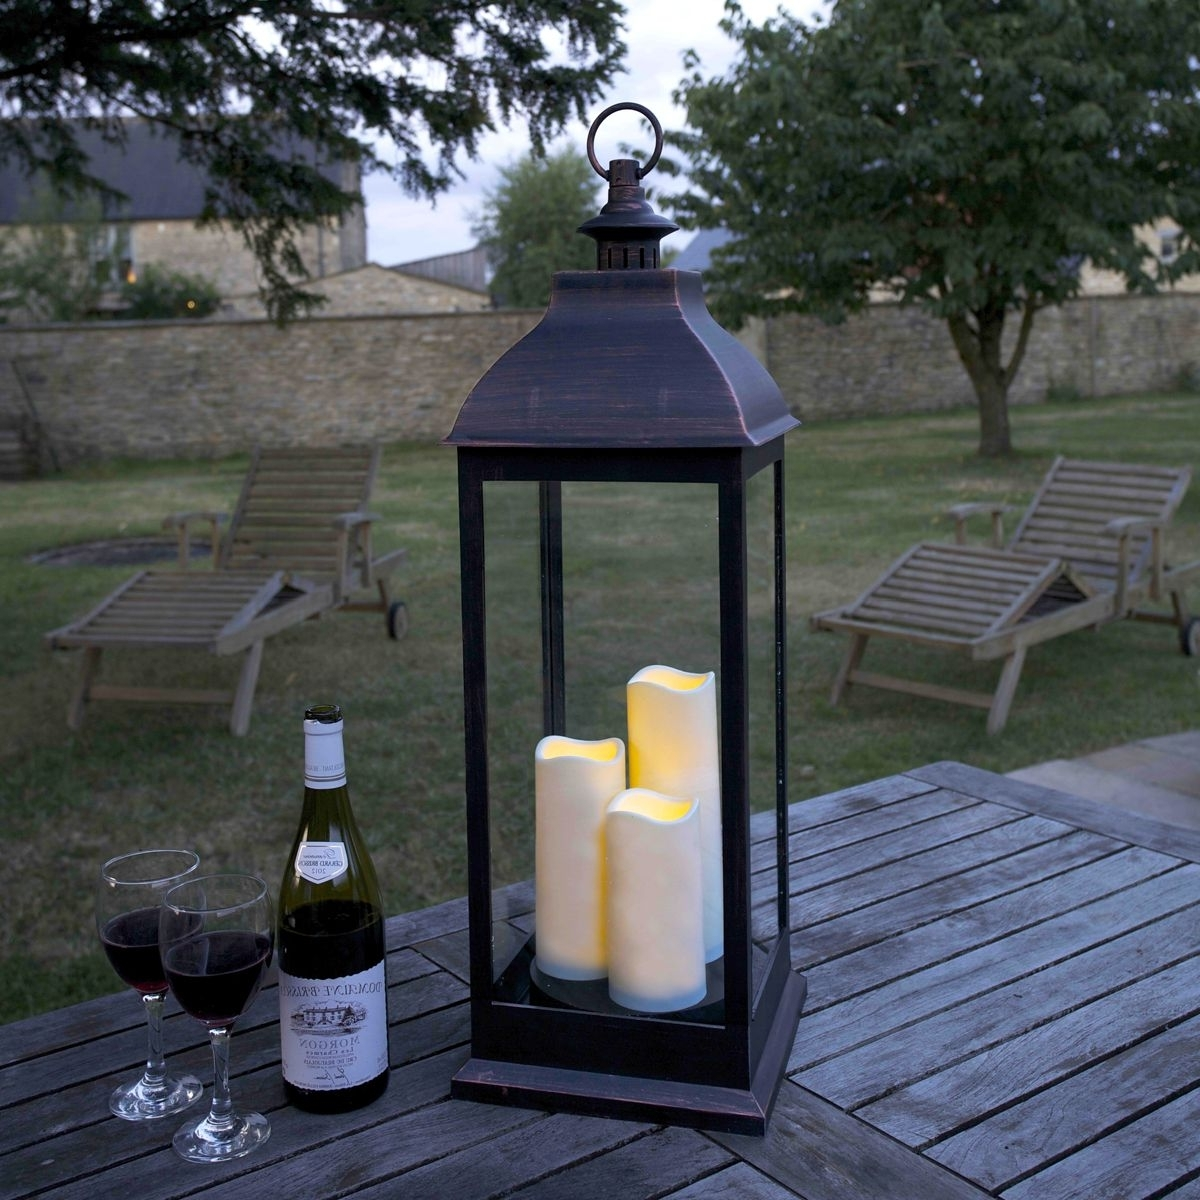 2018 Outdoor Lanterns With Battery Operated With Battery Operated Candle Lanterns – Image Antique And Candle (View 2 of 20)